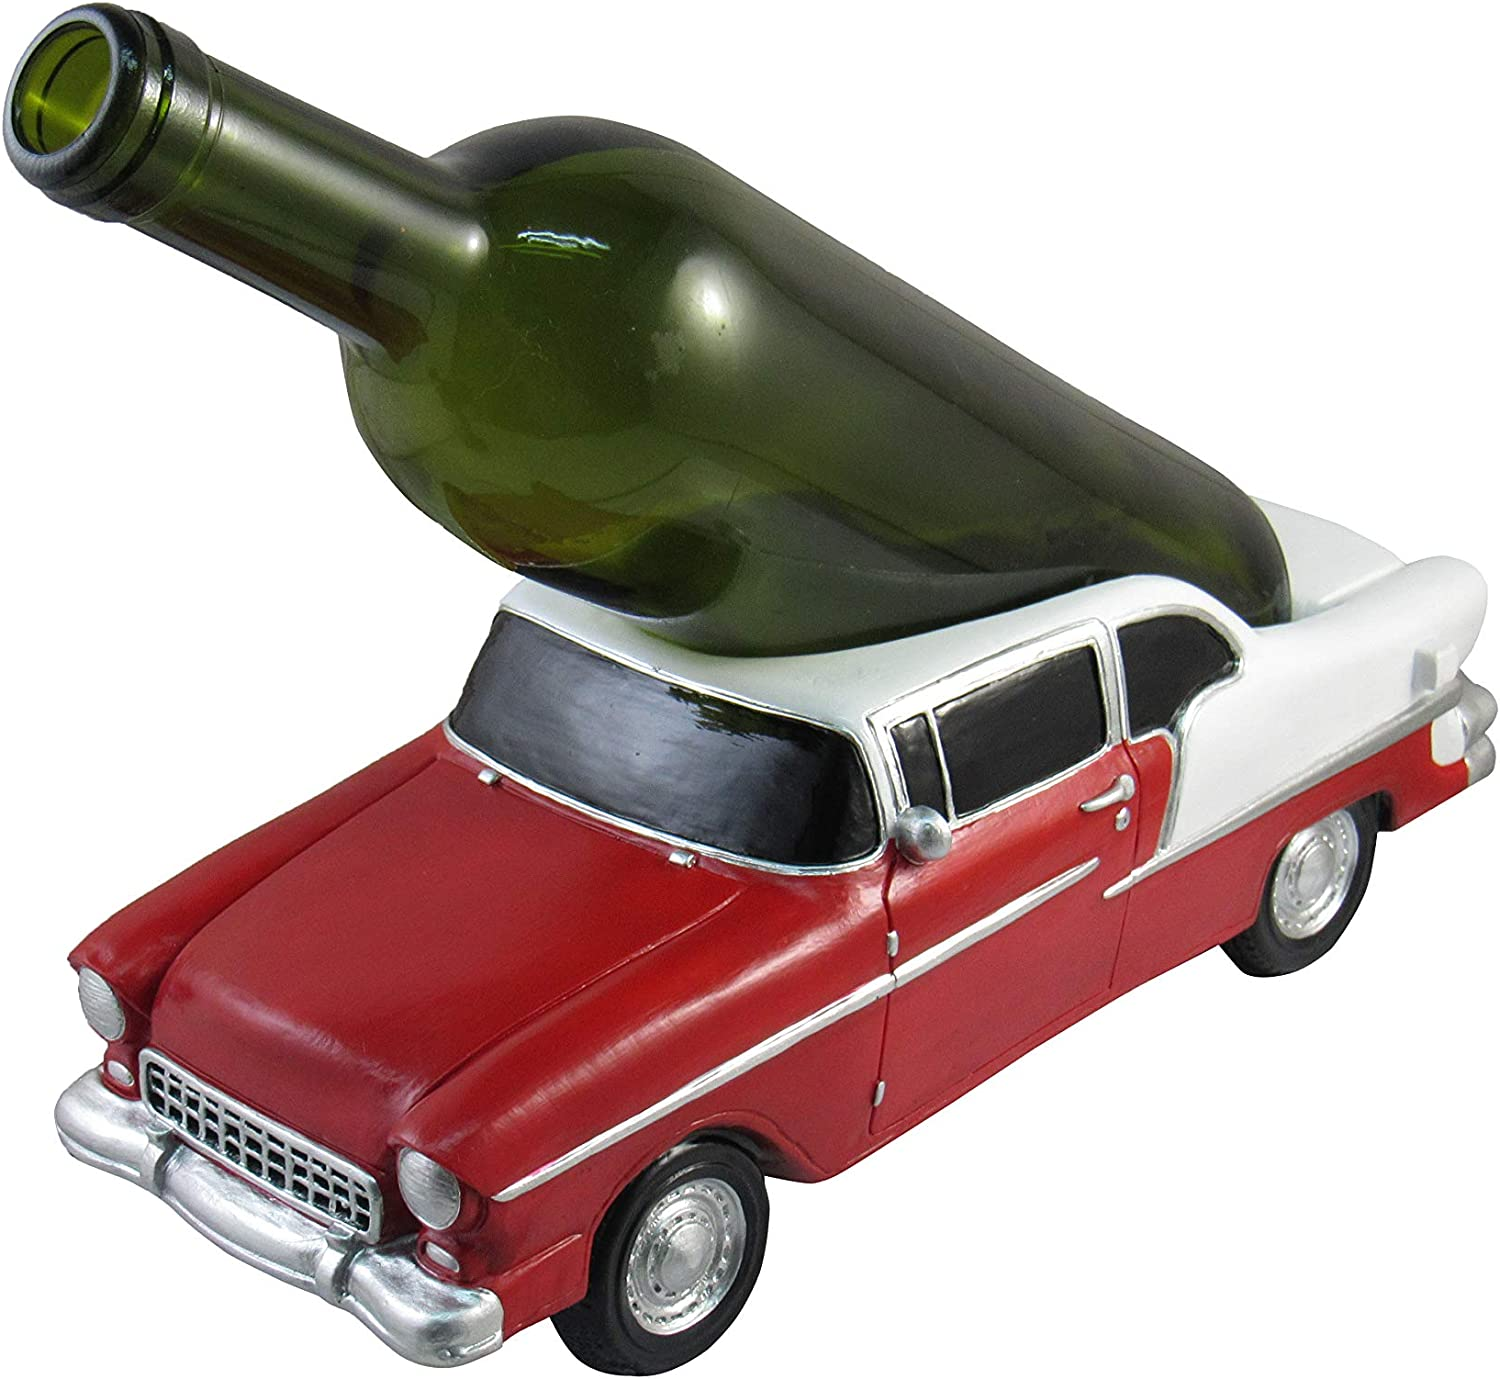 Dwk Classic Vintage Car Wine Bottle Holder Table Top Wine Rack Wine Holder And Wine Bar Accessories Classic Vintage Car Decor Kitchen Decor Kitchen Table Accessories